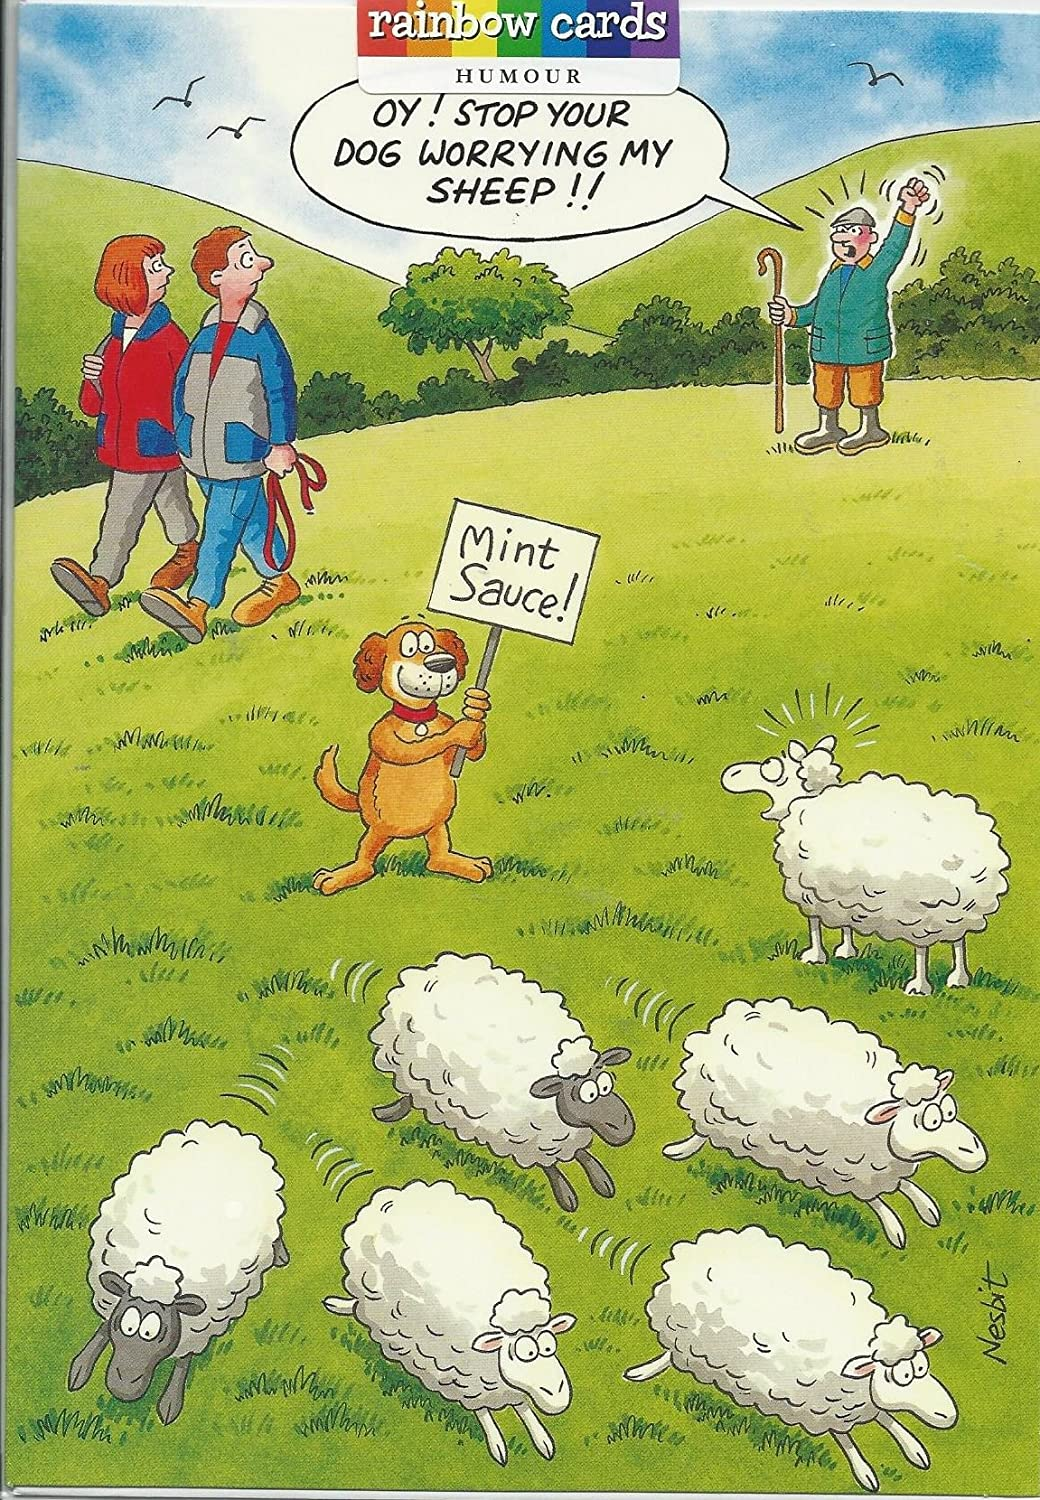 DOG WORRYING SHEEP FUNNY HUMOROUS BIRTHDAY CARD THE FUNNY SIDE OF – Birthday Cards Humour